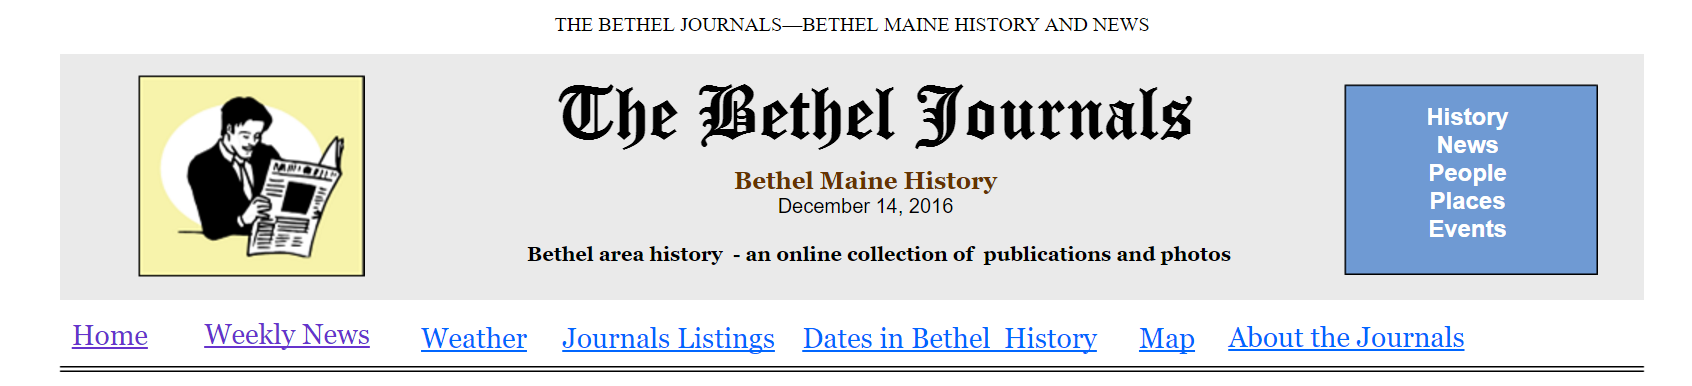 The Bethel Journals